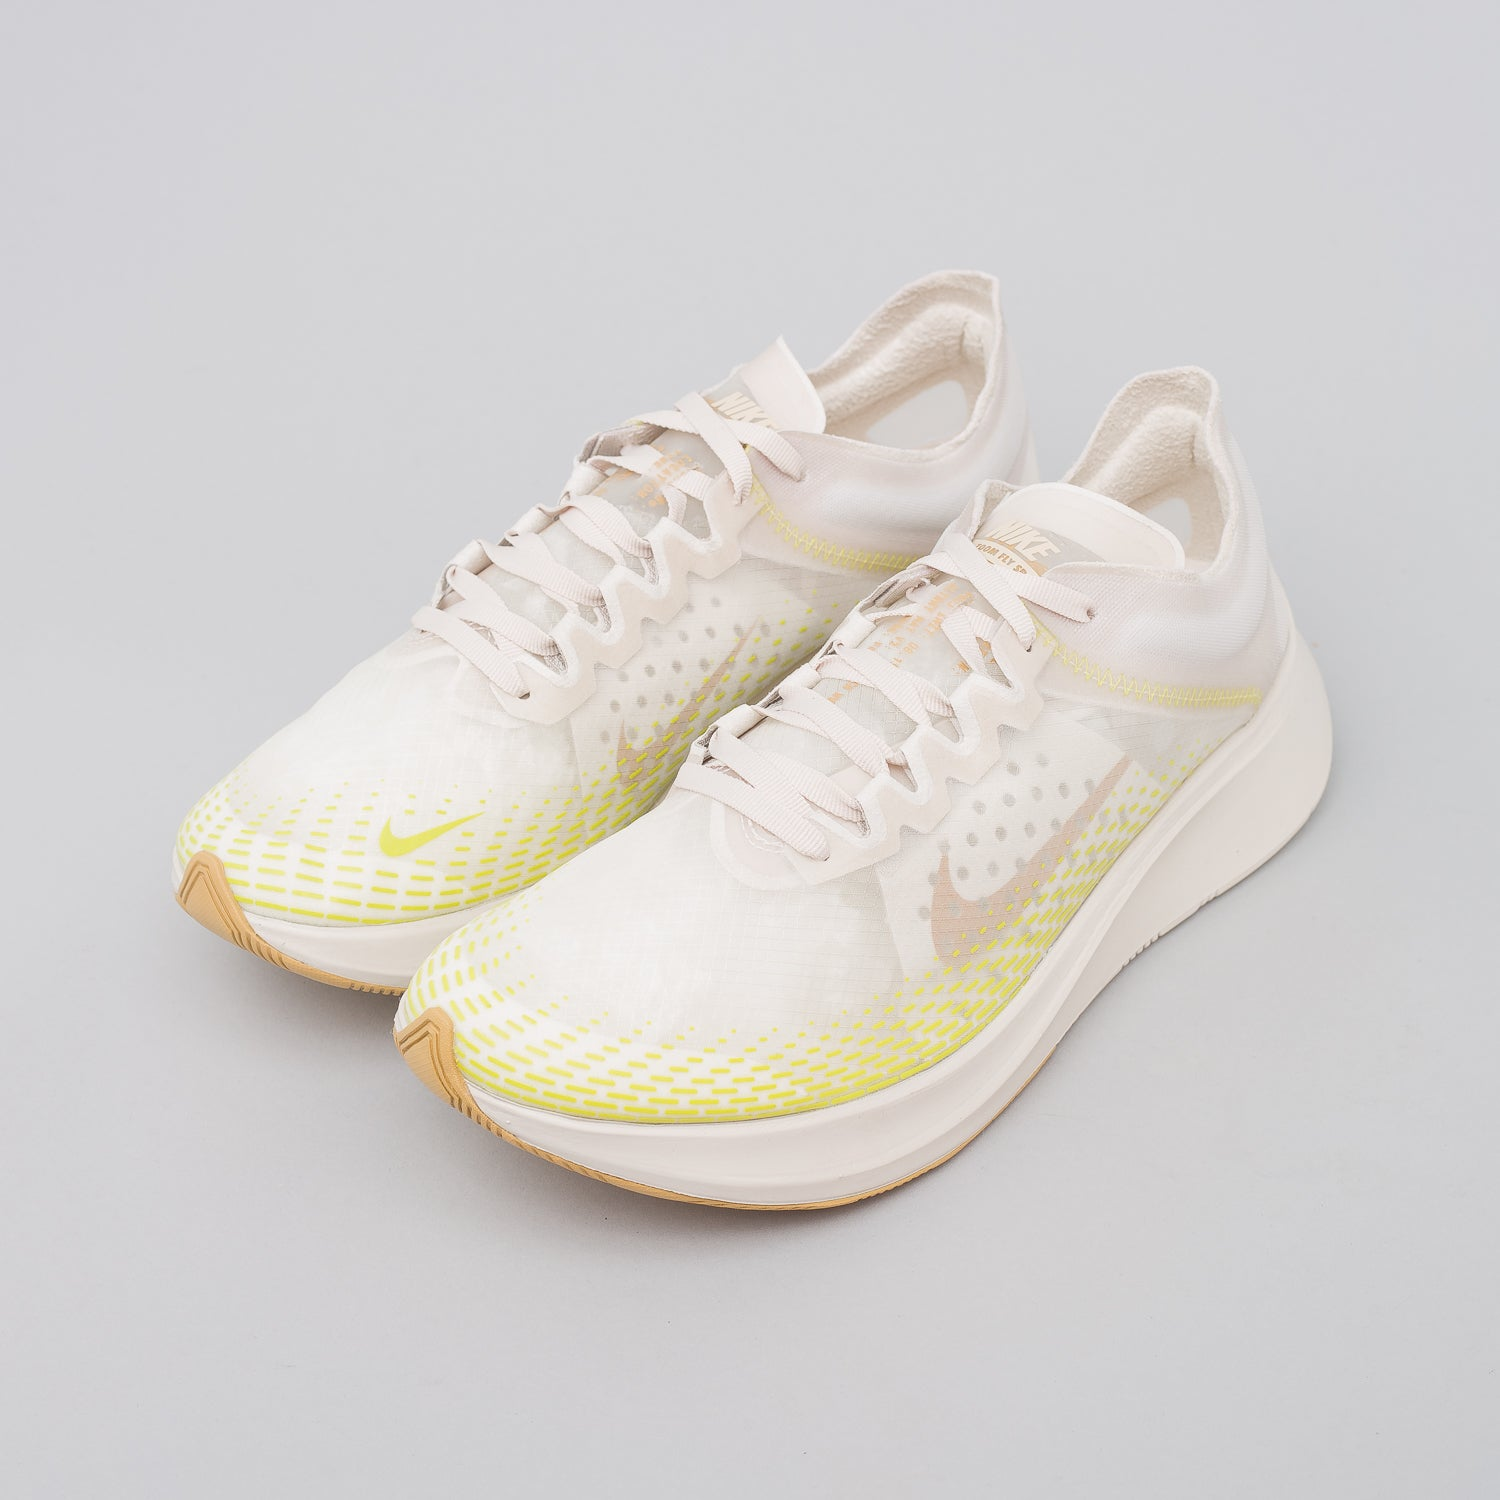 Zoom Fly SP Fast in Light Orewood